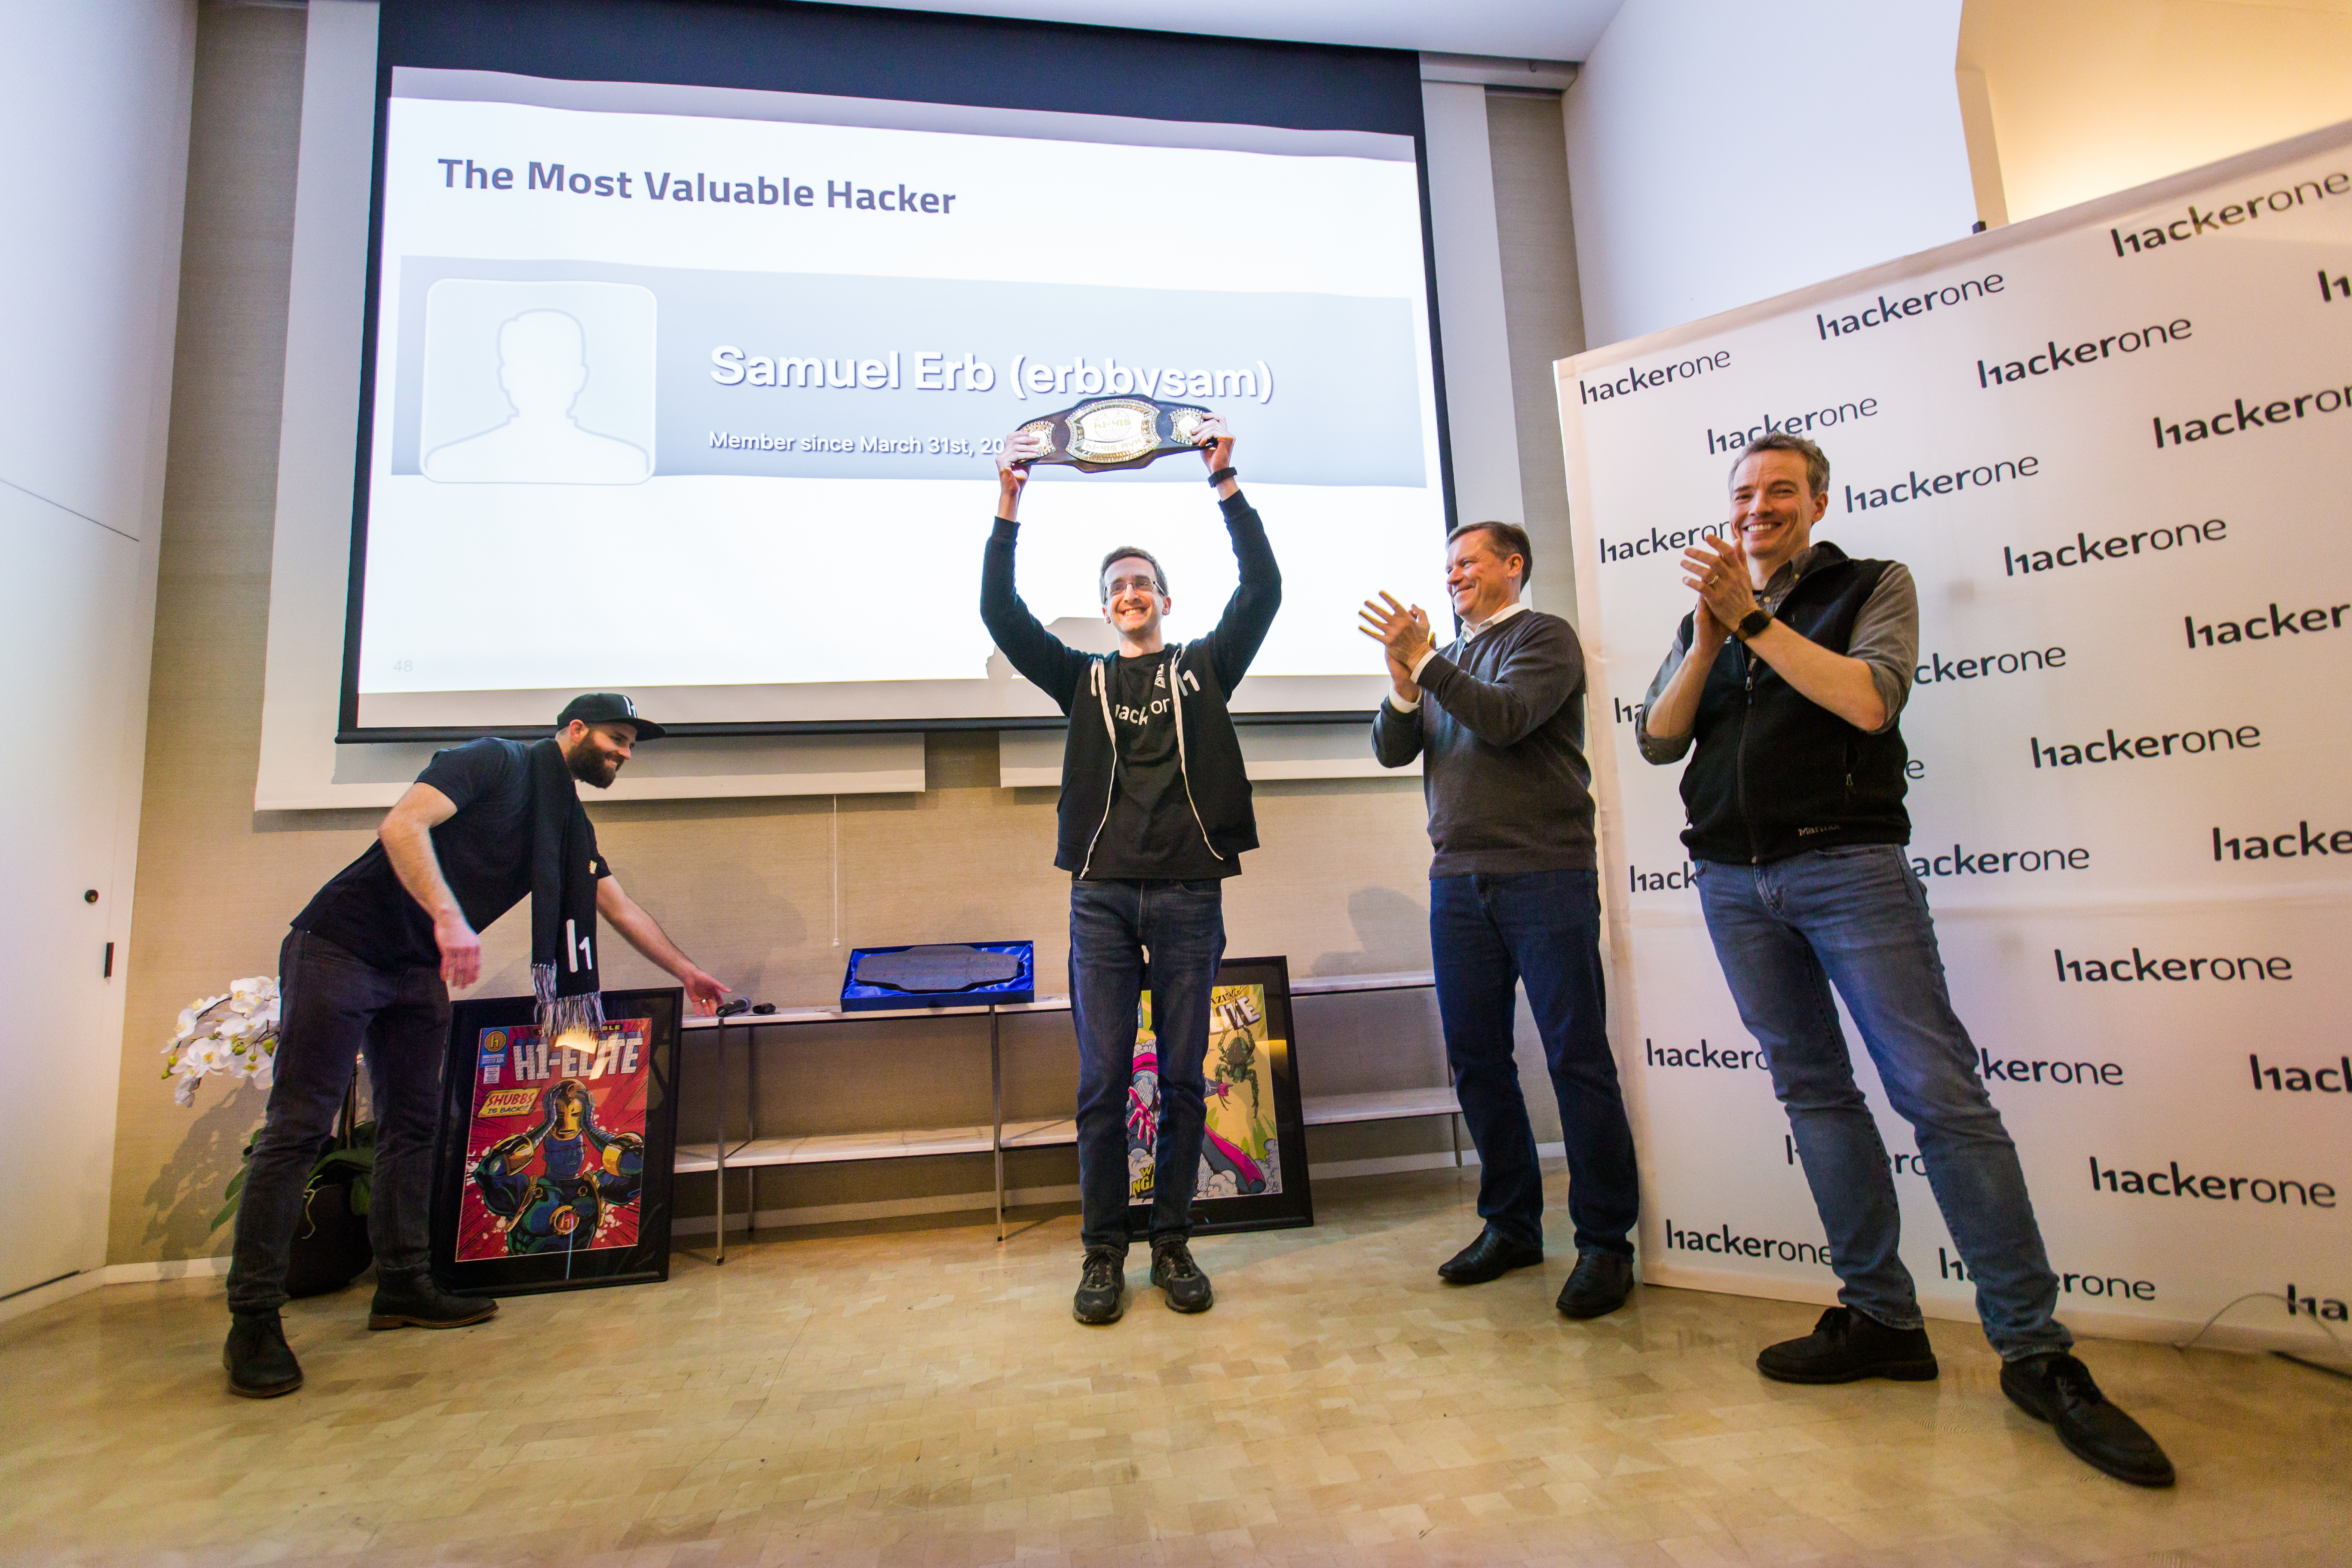 @errbysam shows his pride in holding the Most Valuable Hacker belt